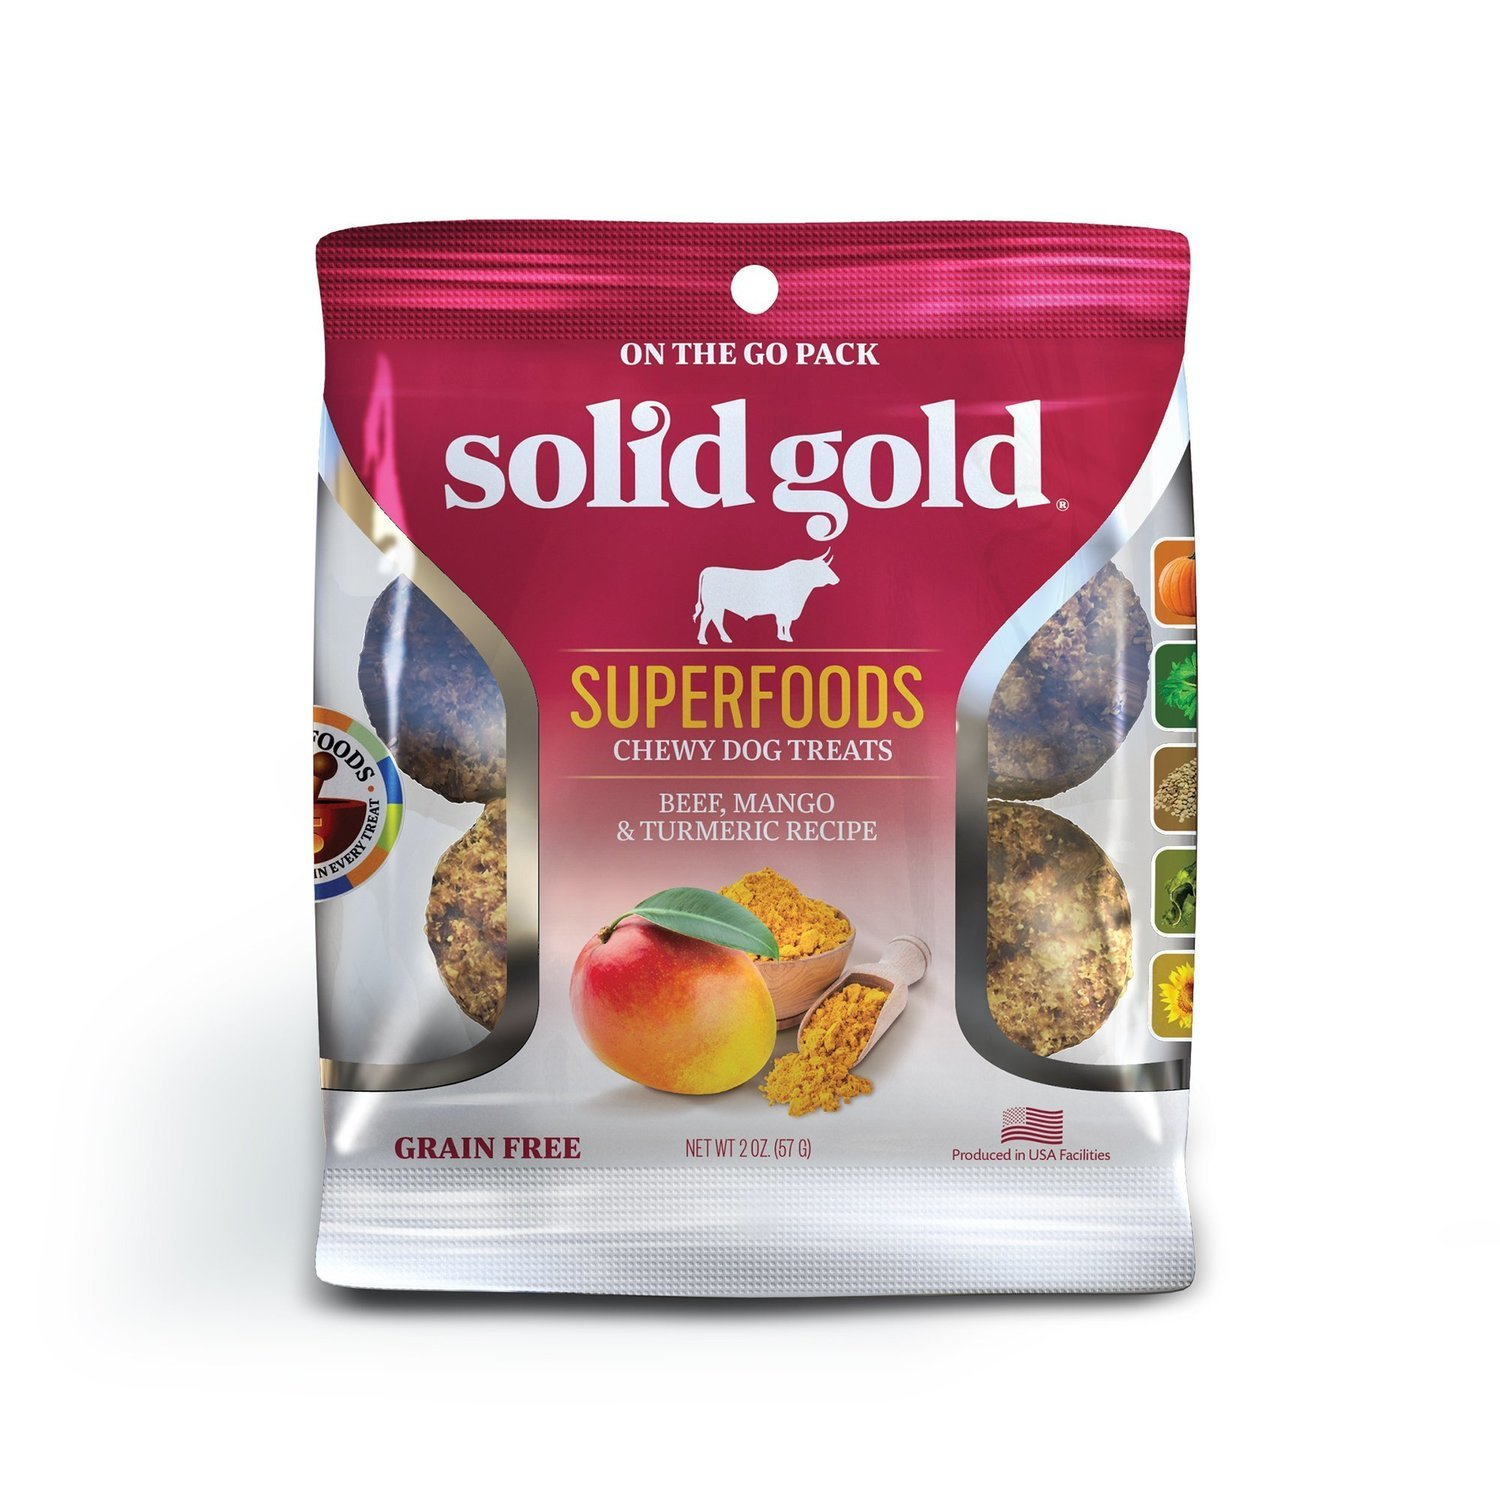 Solid Gold Grain Free Beef, Mango & Turmeric Natural Chewy Dog Treats, 2 oz. (2/19) (T.E3)